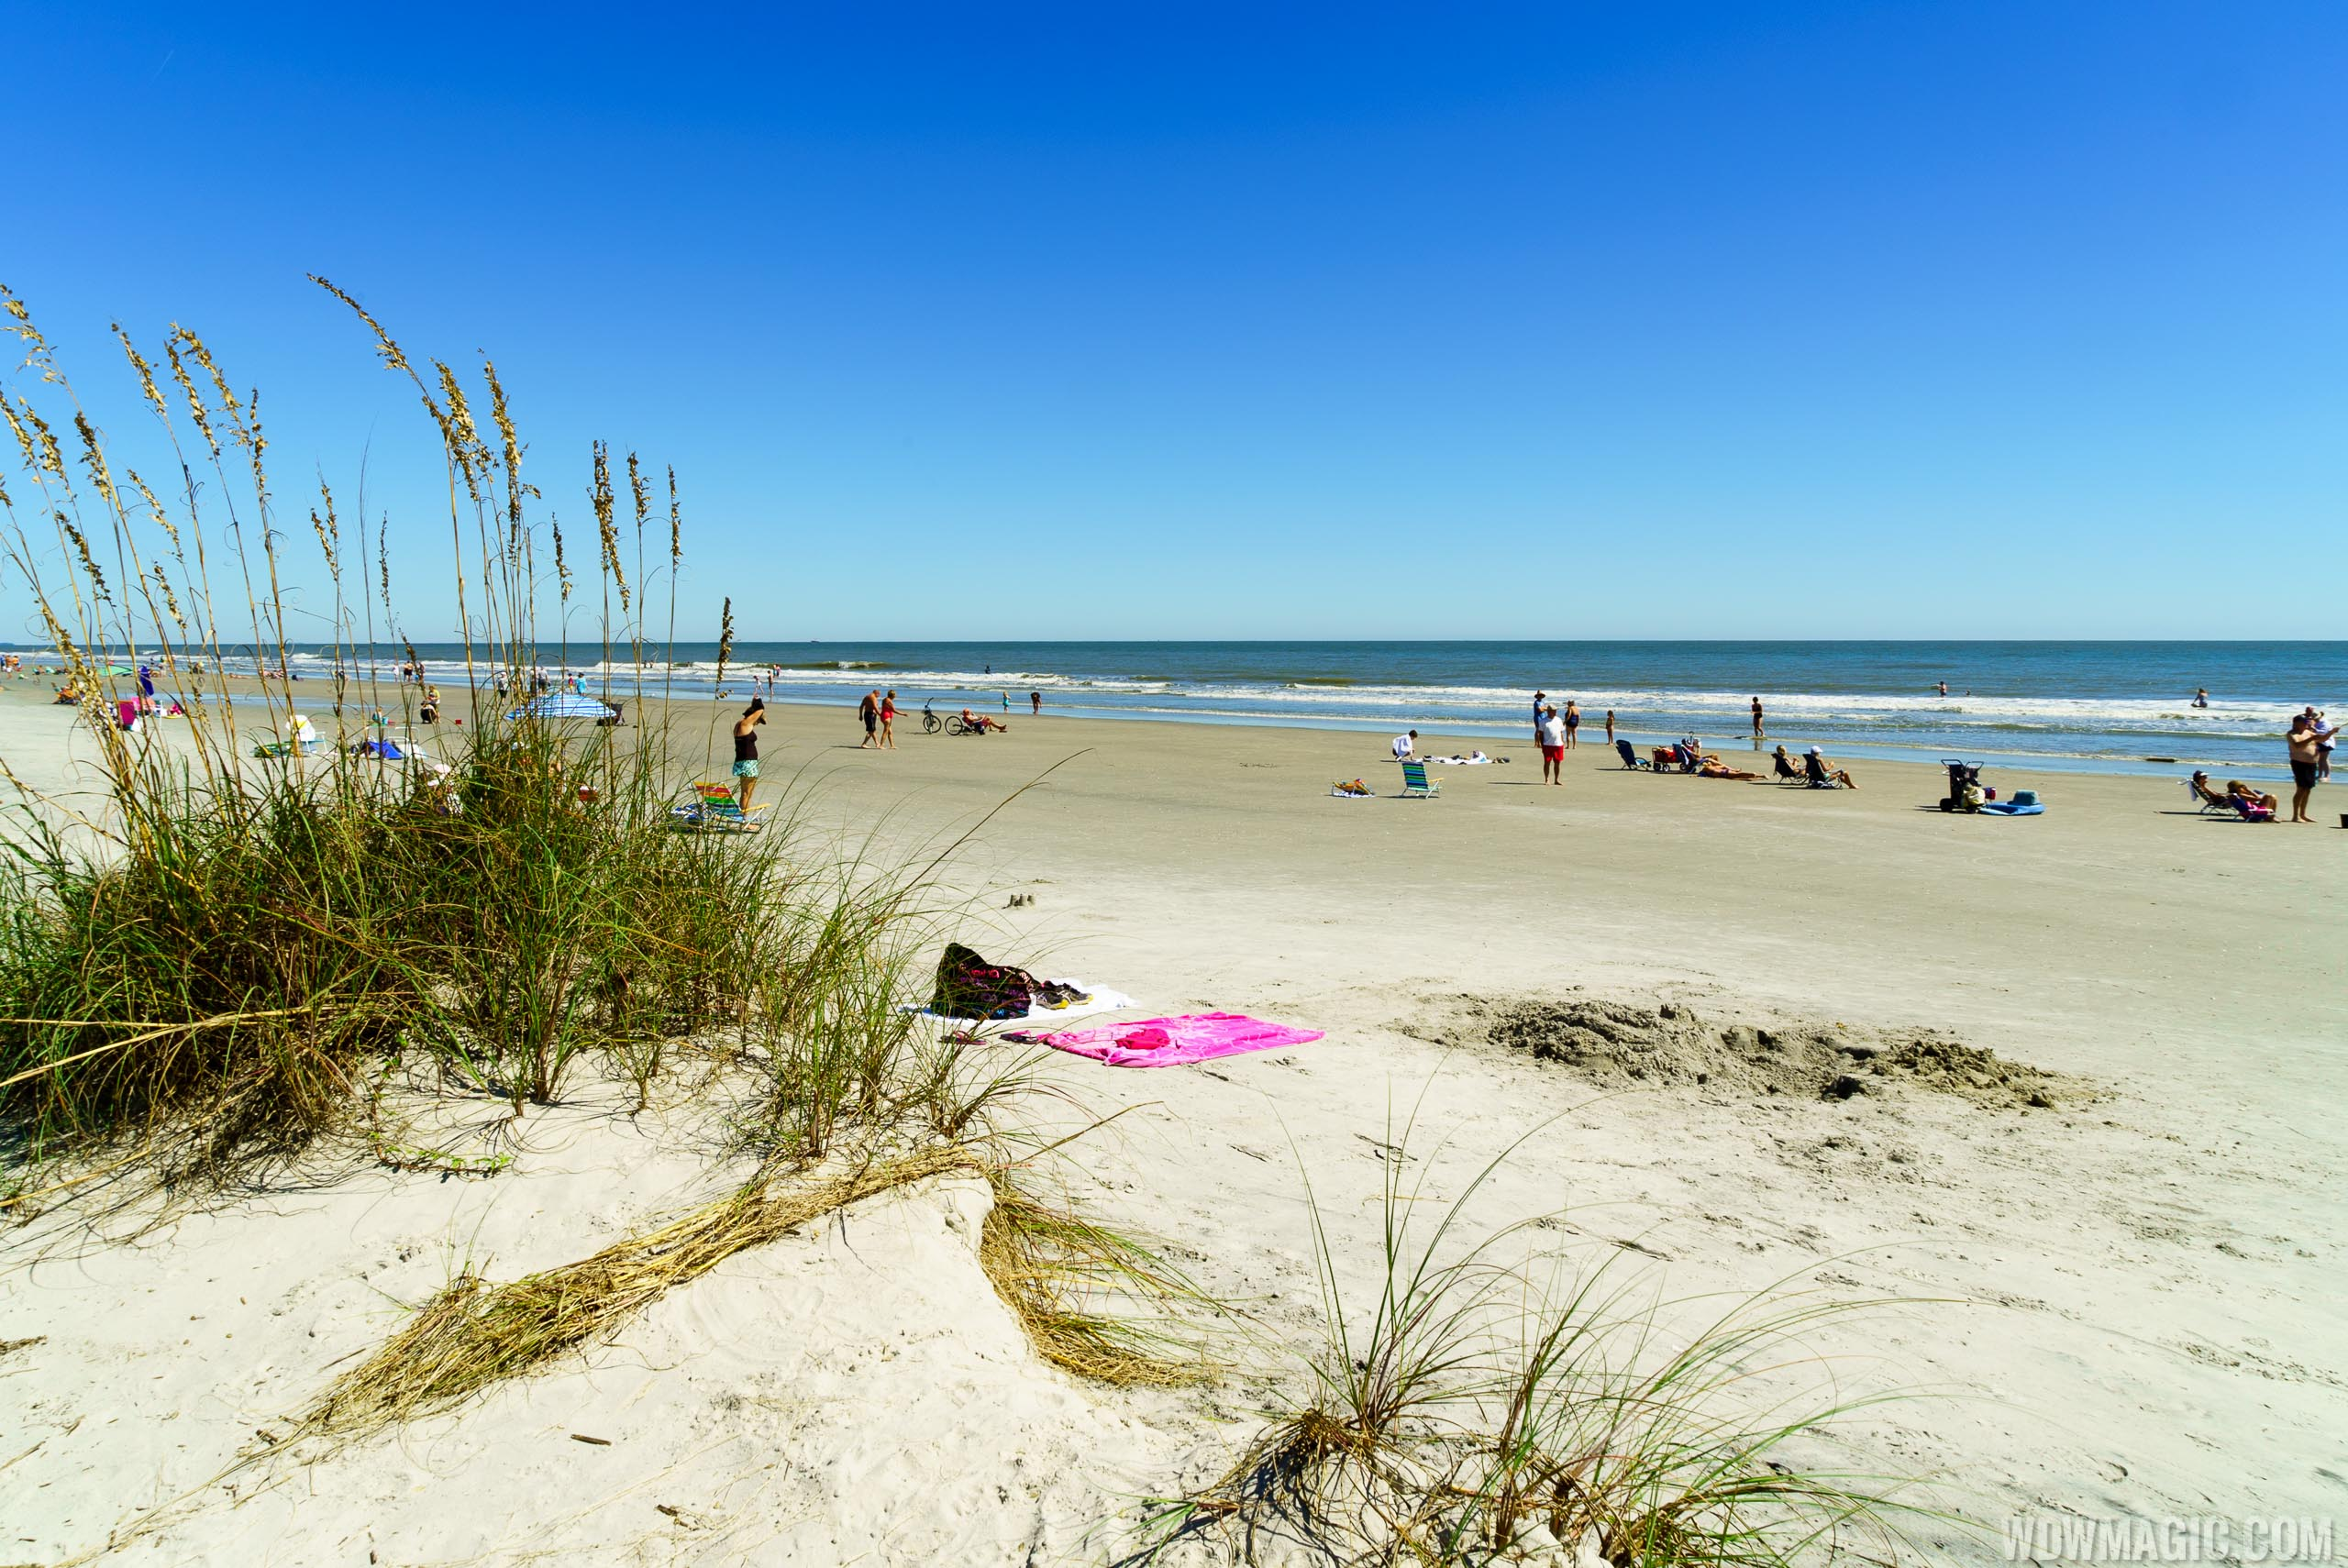 Disney's Hilton Head Island Resort - Beach at Palmetto Dunes